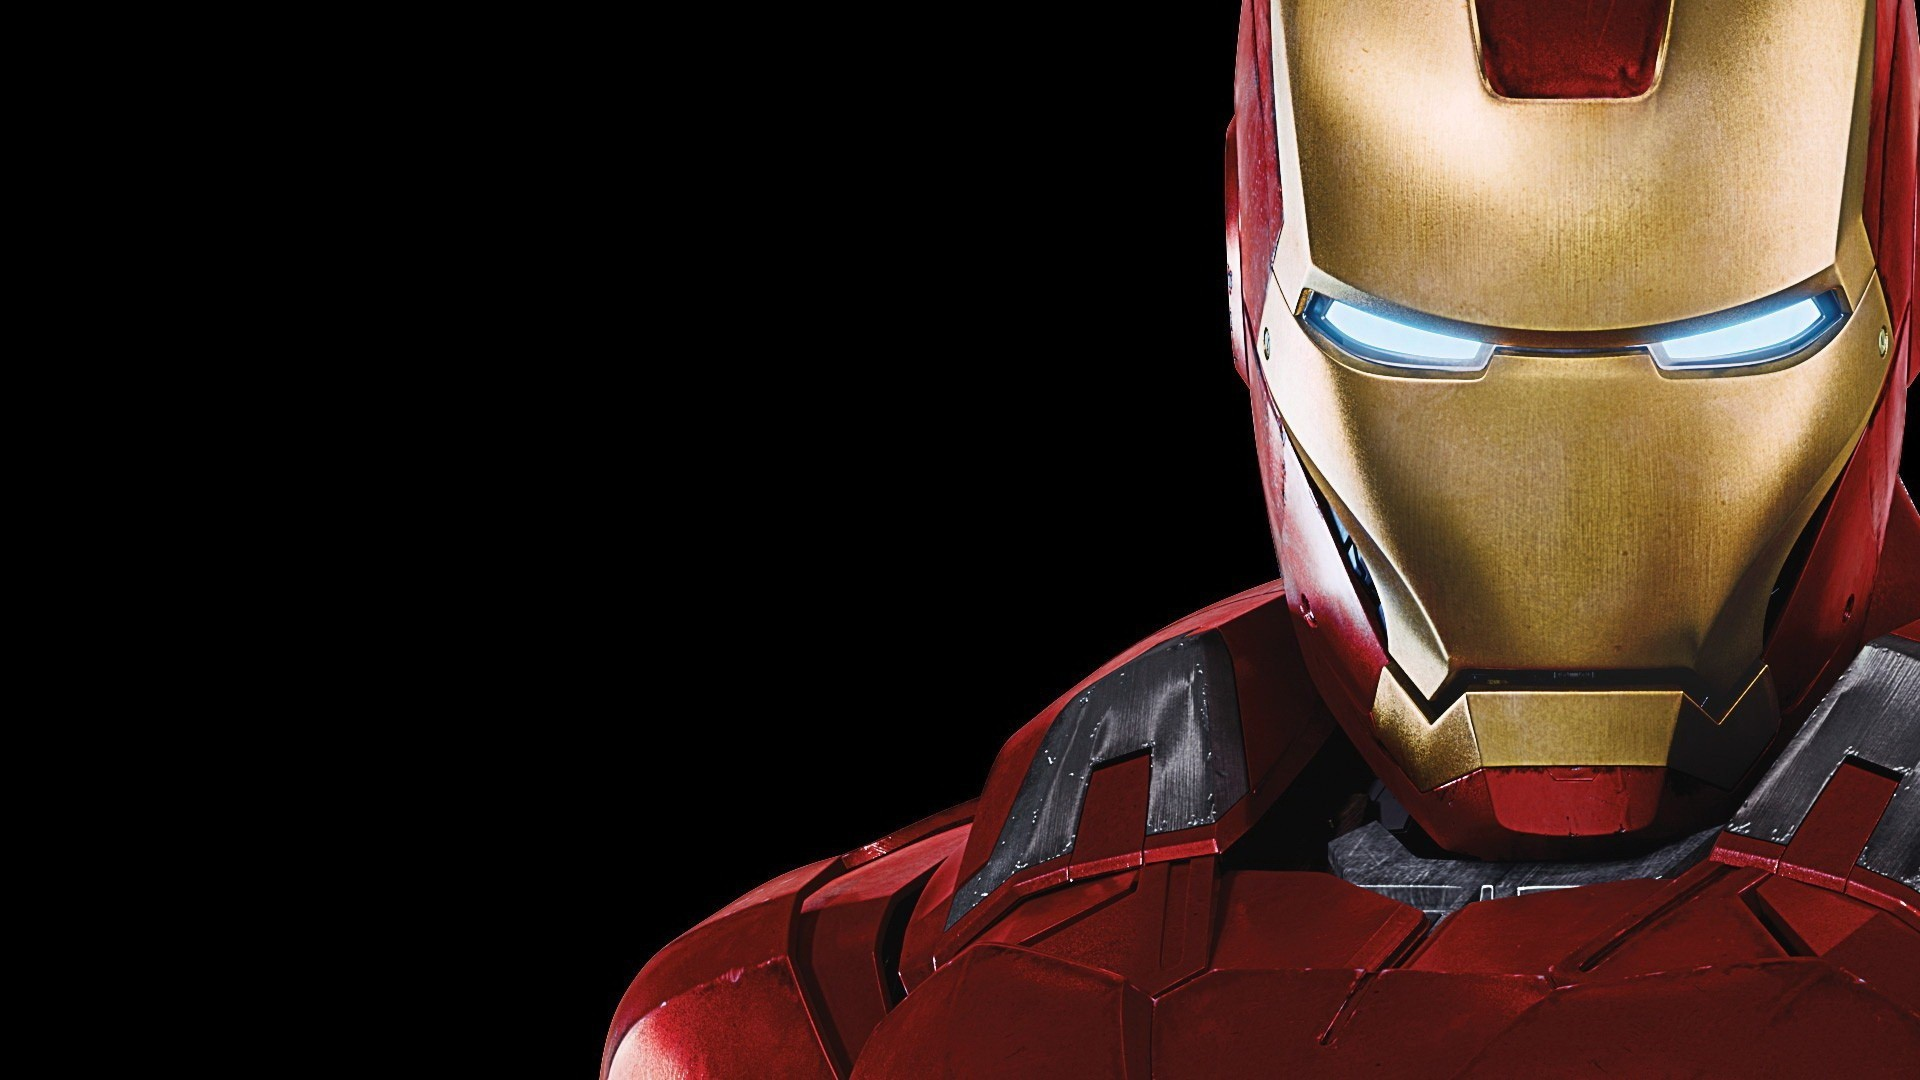 iron man hd wallpapers 1080p (72+ images)